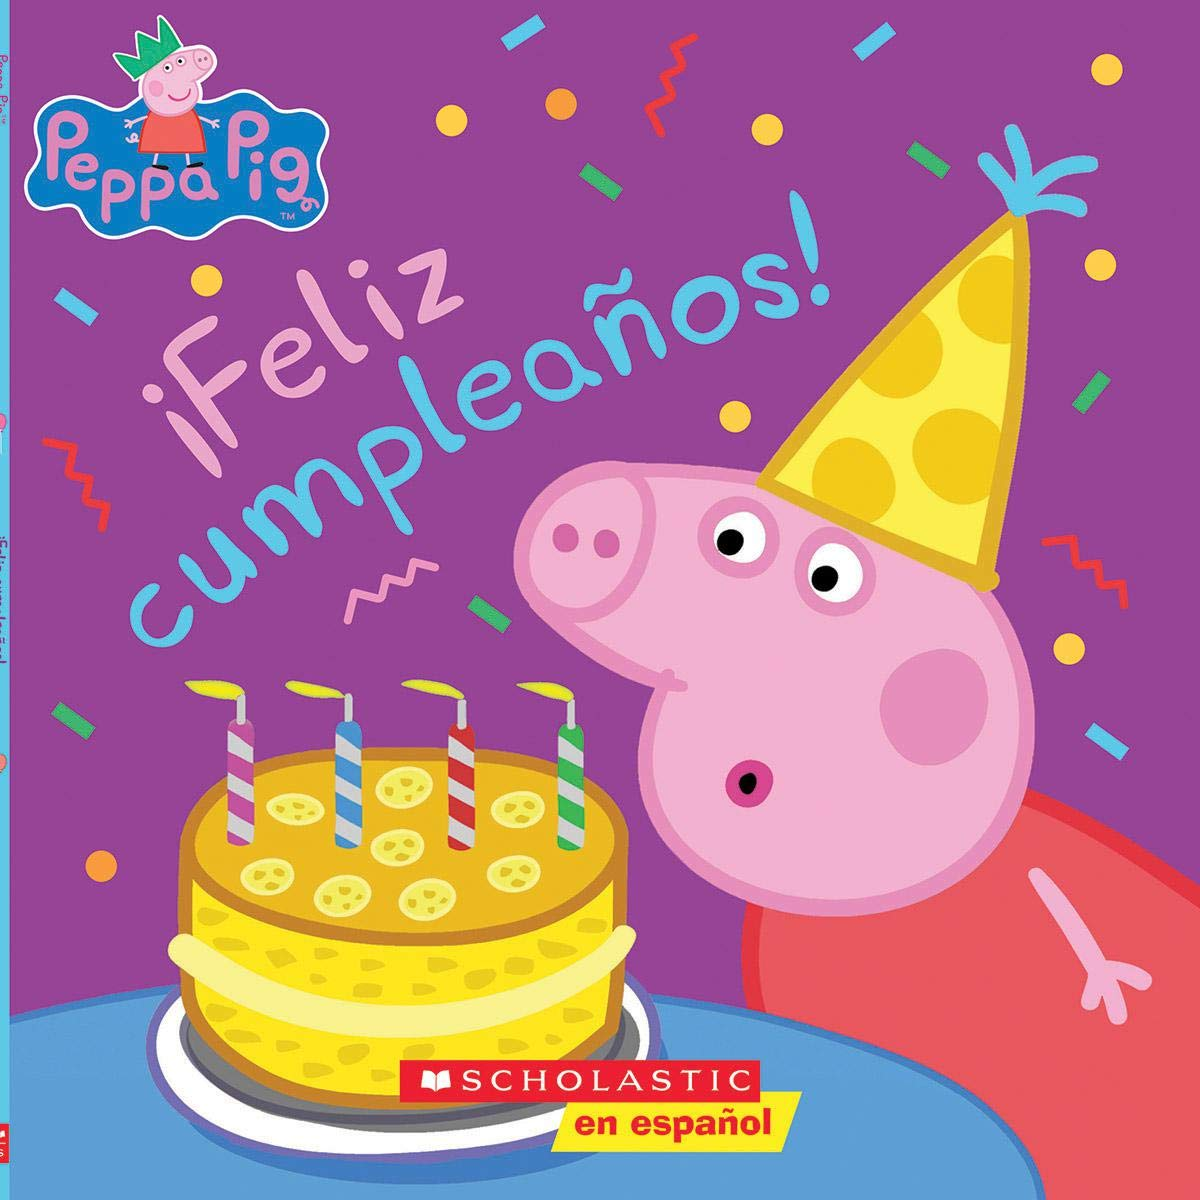 Happy Birthday In Spanish.Peppa Pig Feliz Cumpleanos Happy Birthday Spanish